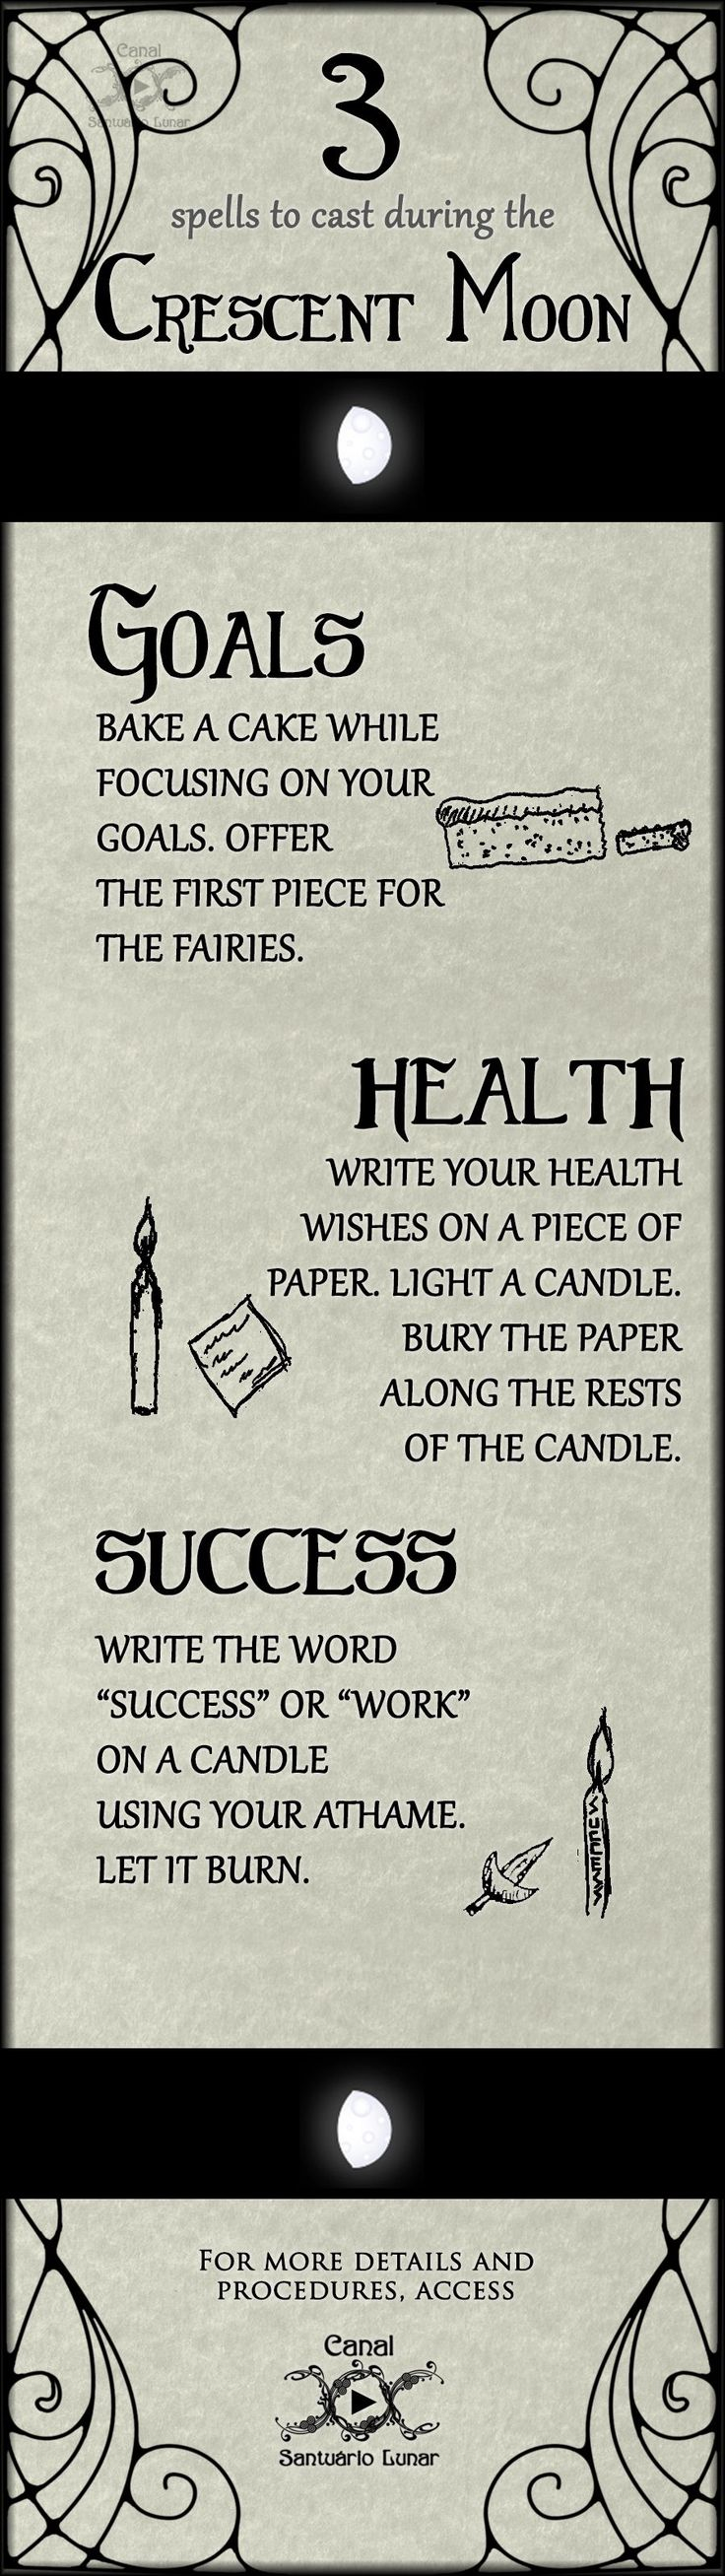 (Pinterest) 3 spells for the Waxing Moon - Magic, Witchcraft, Paganism, Wicca